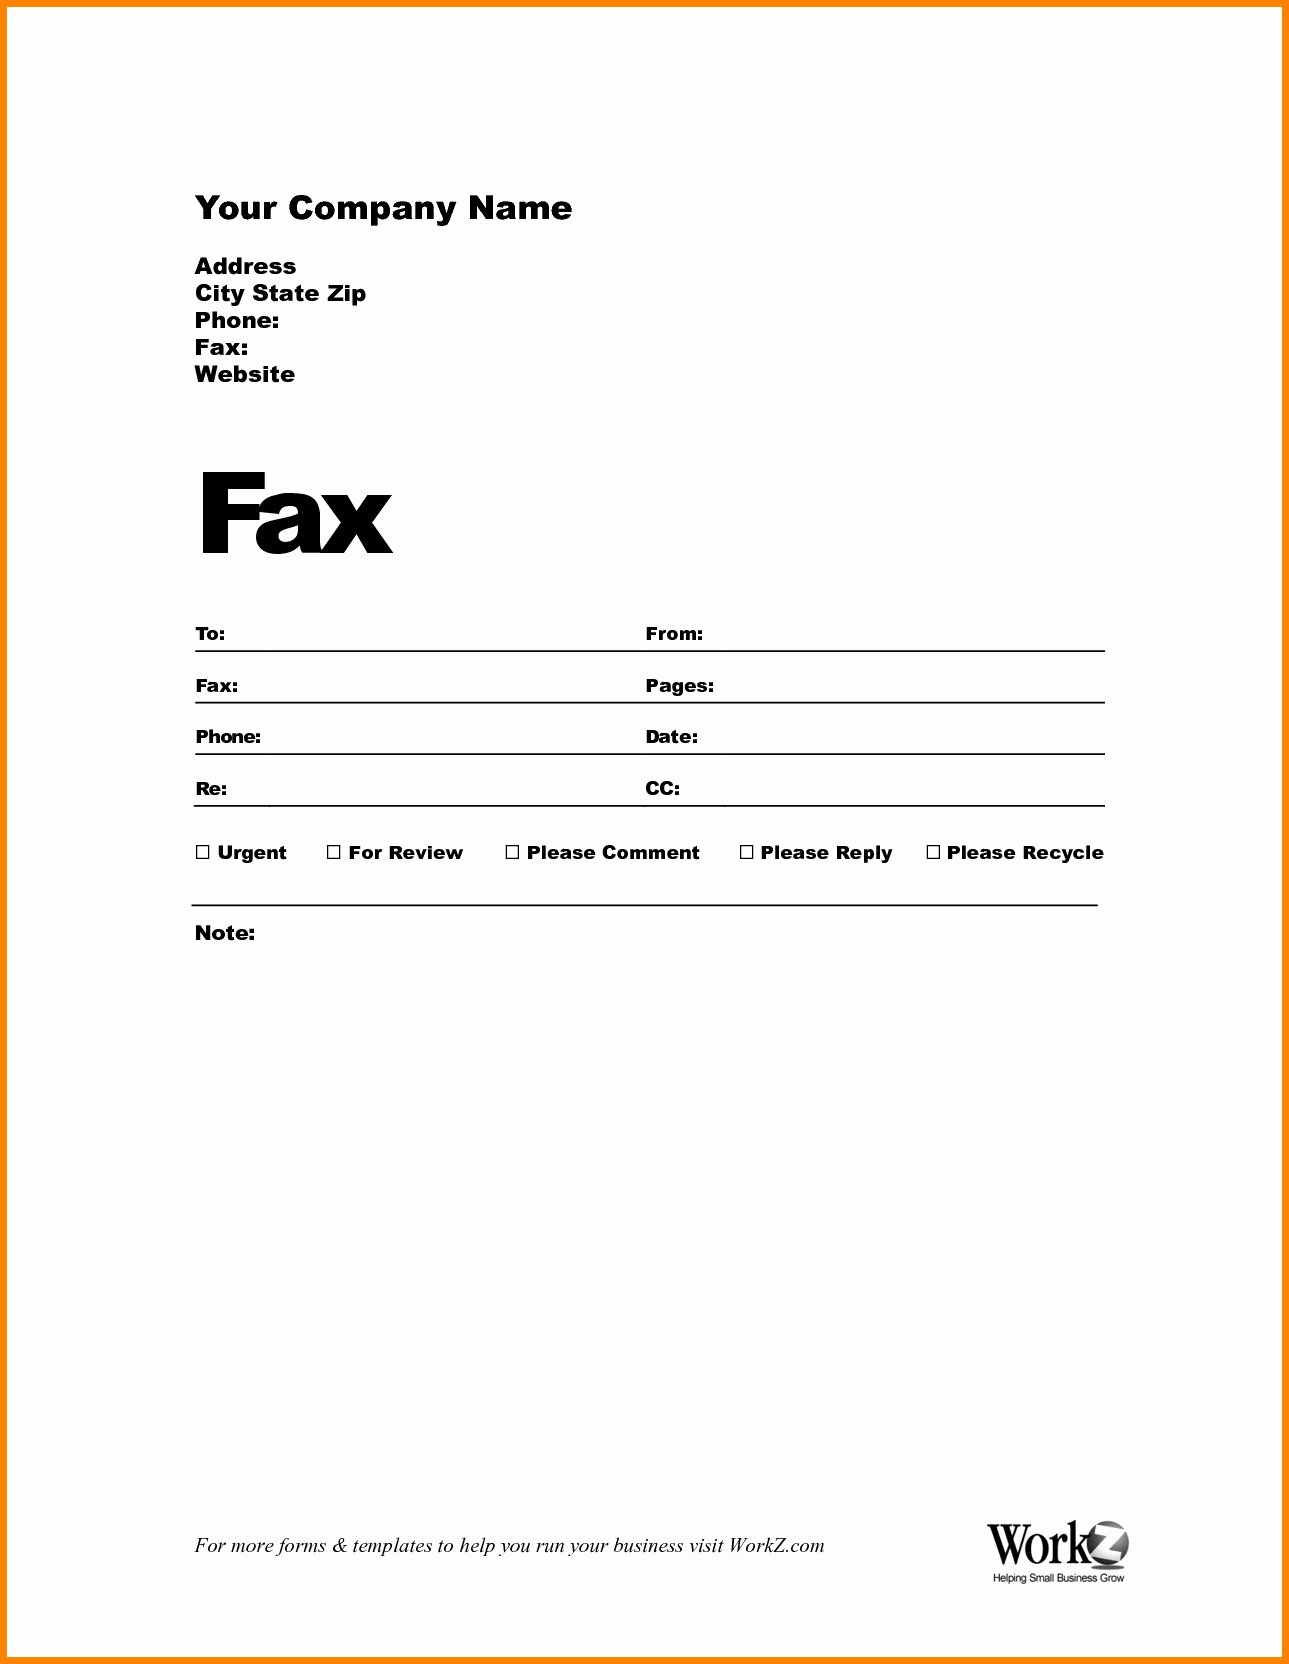 Fax Cover Sheet Template Word Confidential Fax Cover Sheet